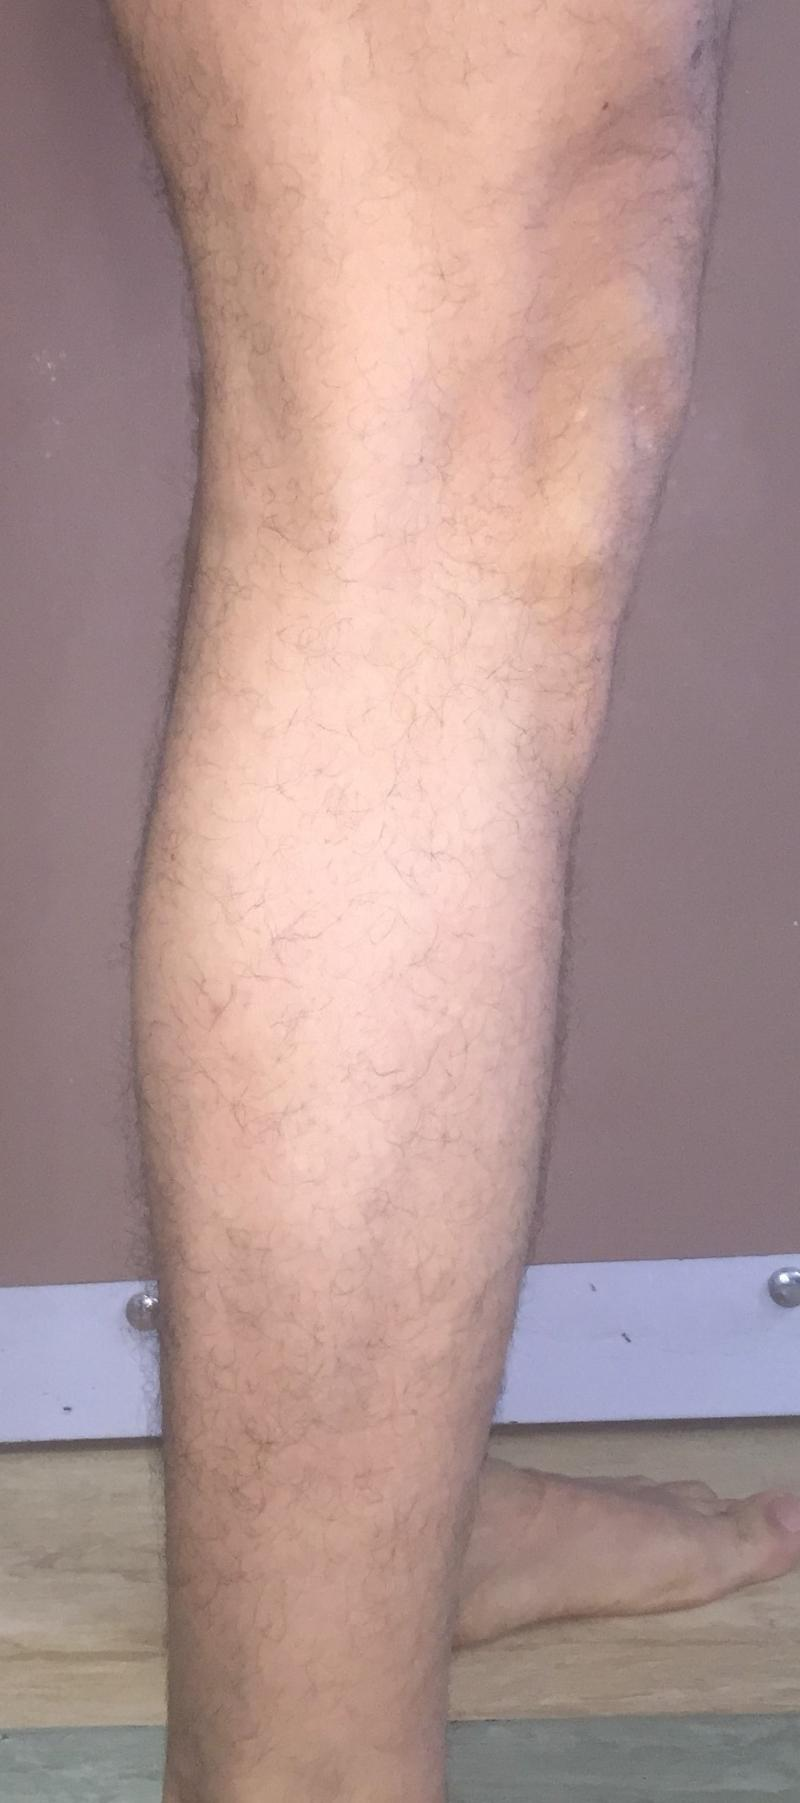 CalfImplants, Calf Enhanement, Leg enlargement, Fat graft, Best Cosmetic Sureger